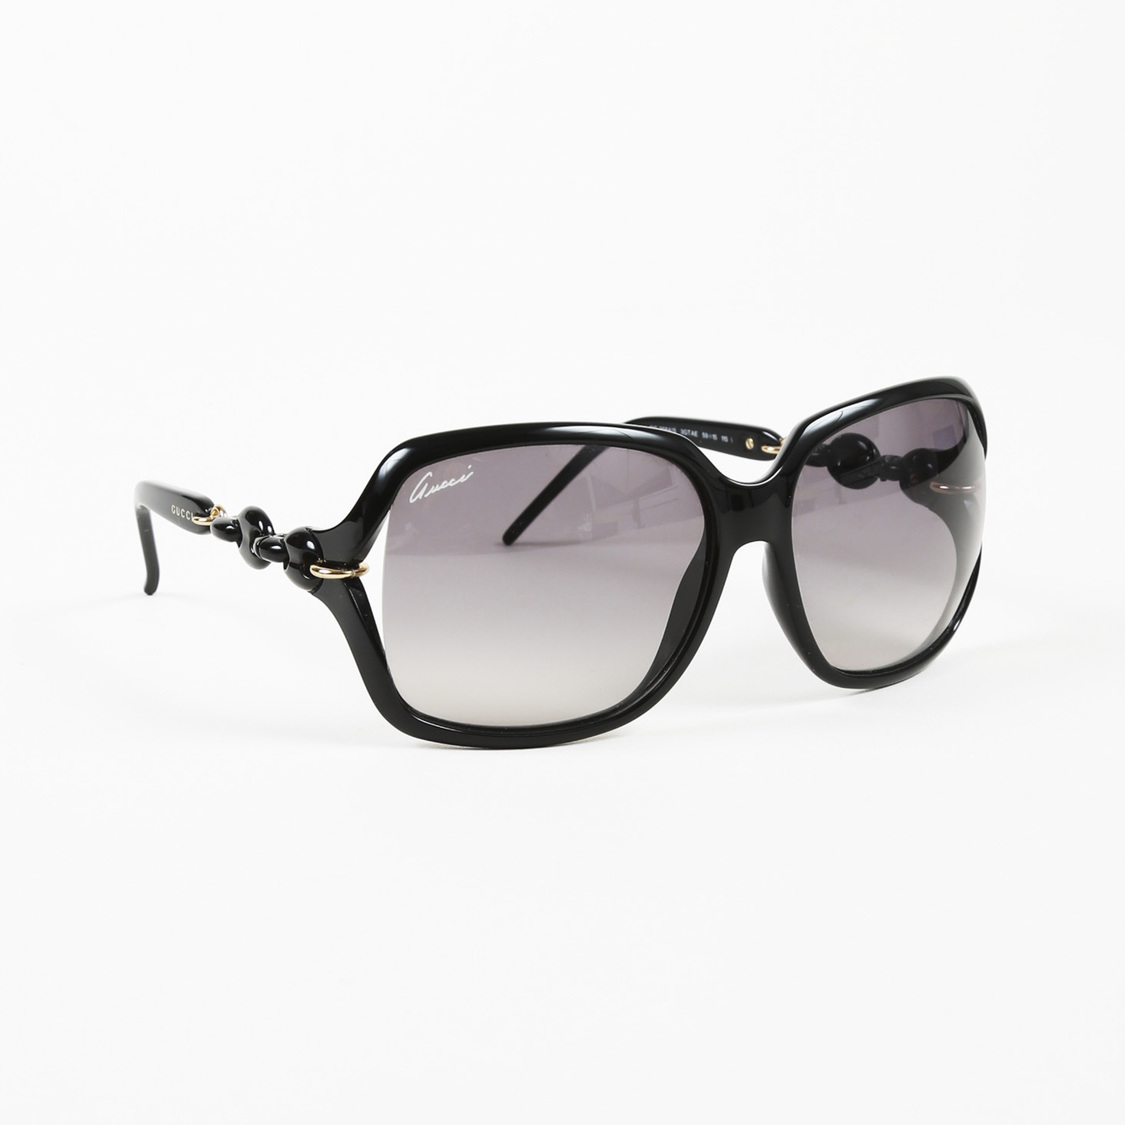 be92f1acd3 Details about Gucci Black Oversized Sunglasses